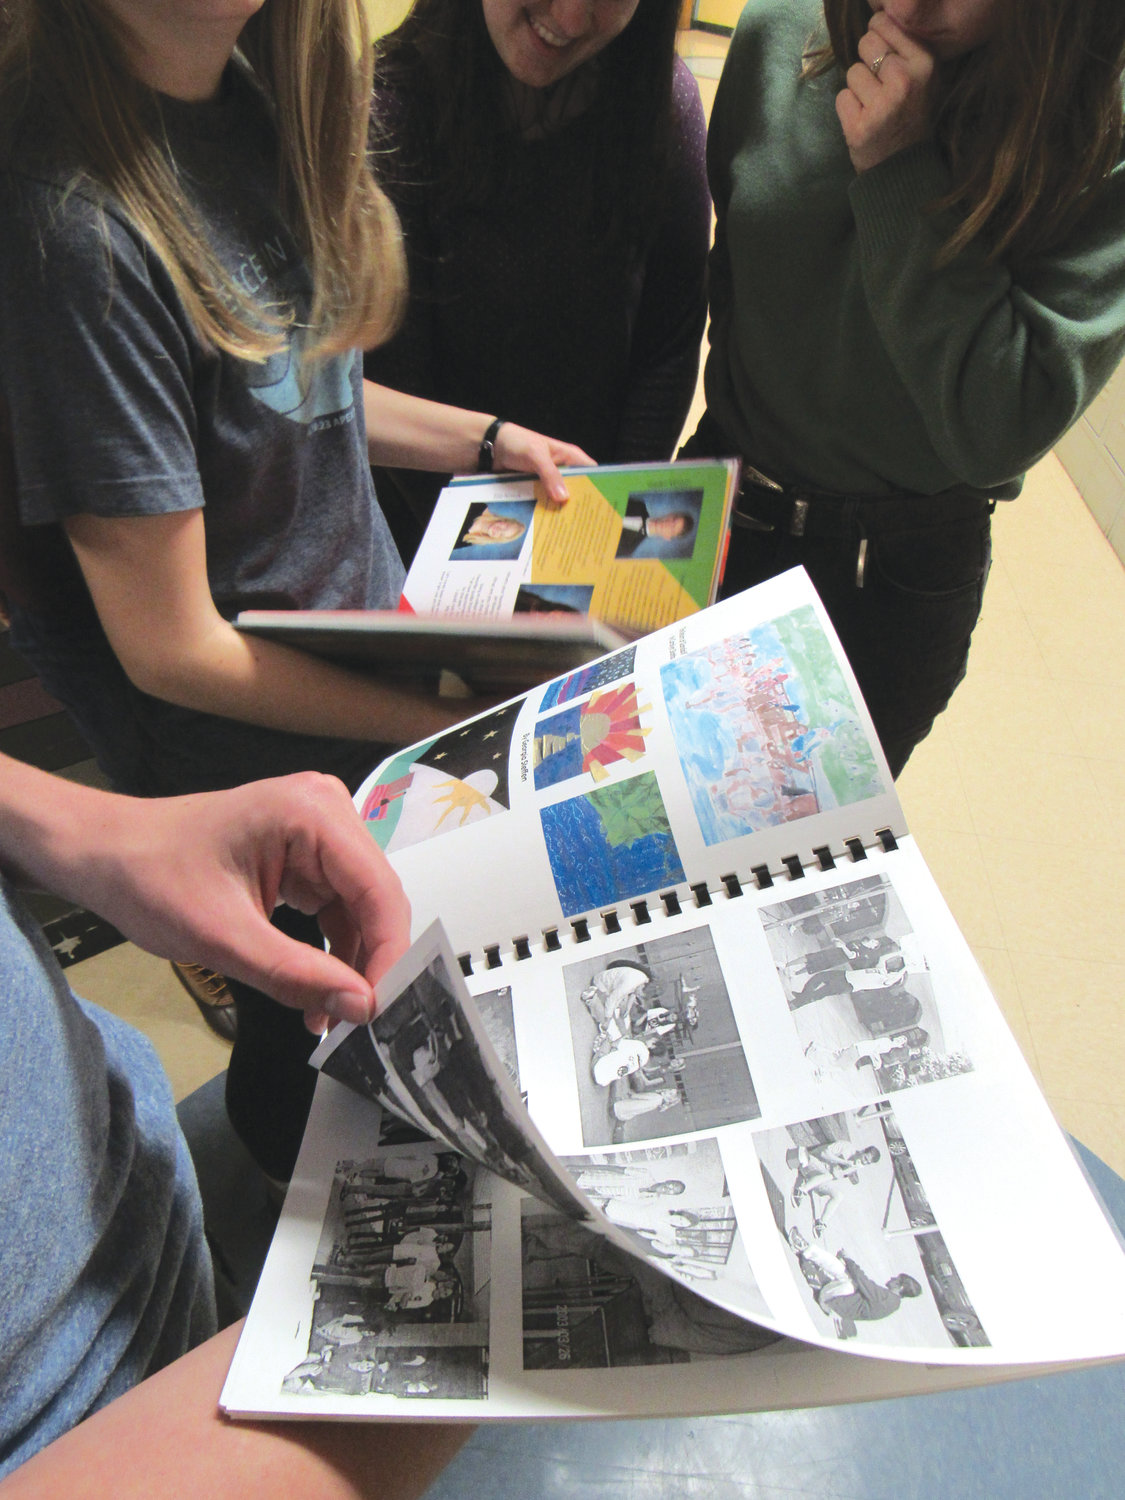 Members of Woods Charter's yearbook staff compare the 2003-2004 edition, foreground, and last year's yearbook.